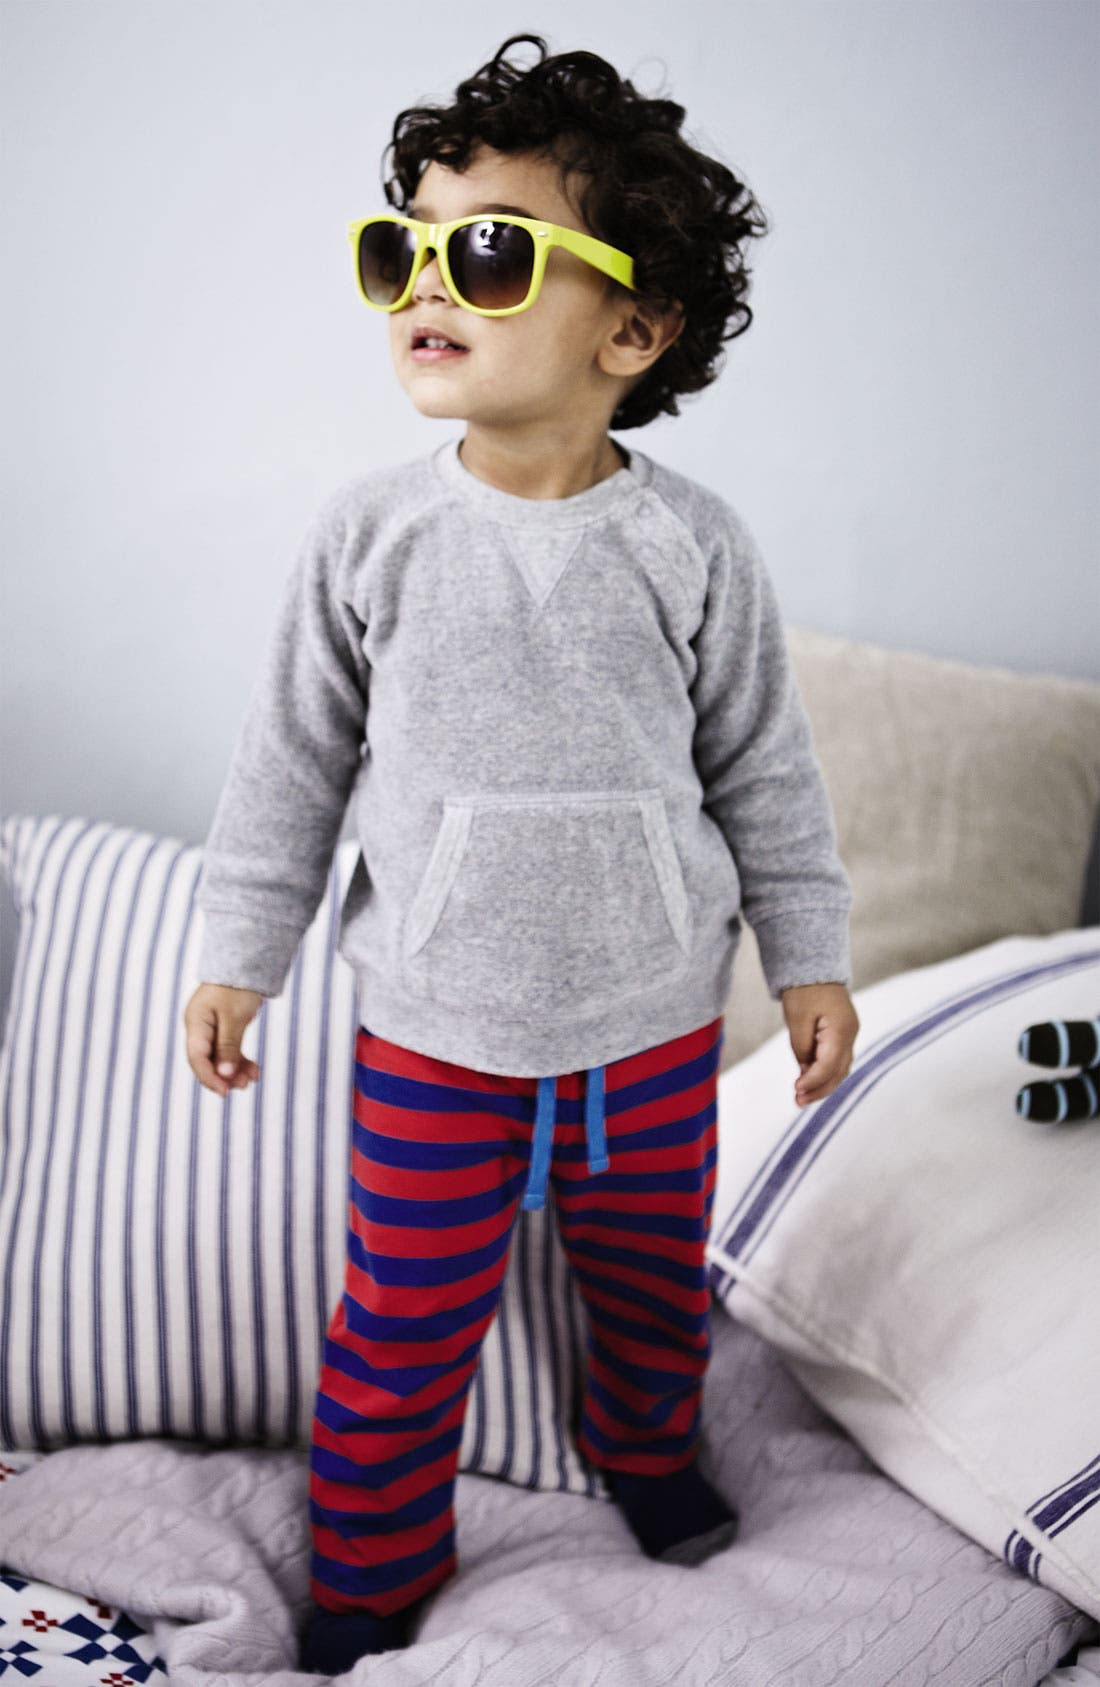 Alternate Image 2  - Mini Boden 'Toweling' Sweater (Baby)